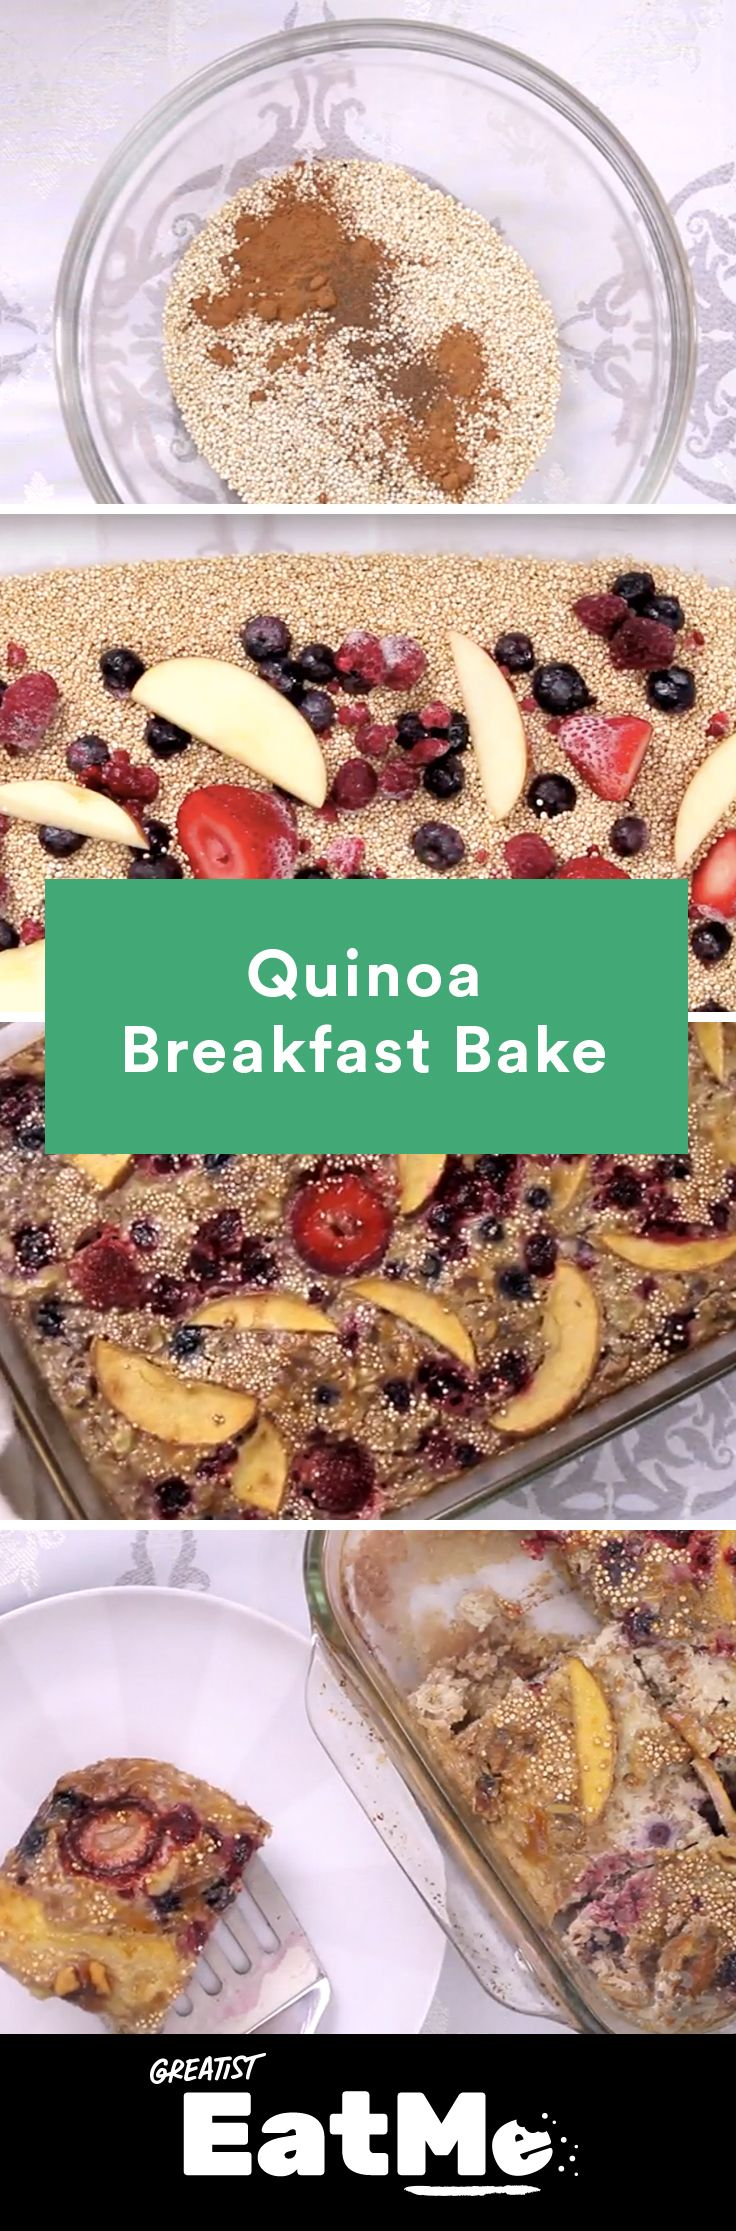 Breakfast is served—for the next 5 days! #healthy #quinoa #breakfast #bake http://greatist.com/eat/quinoa-breakfast-bake-recipe-video